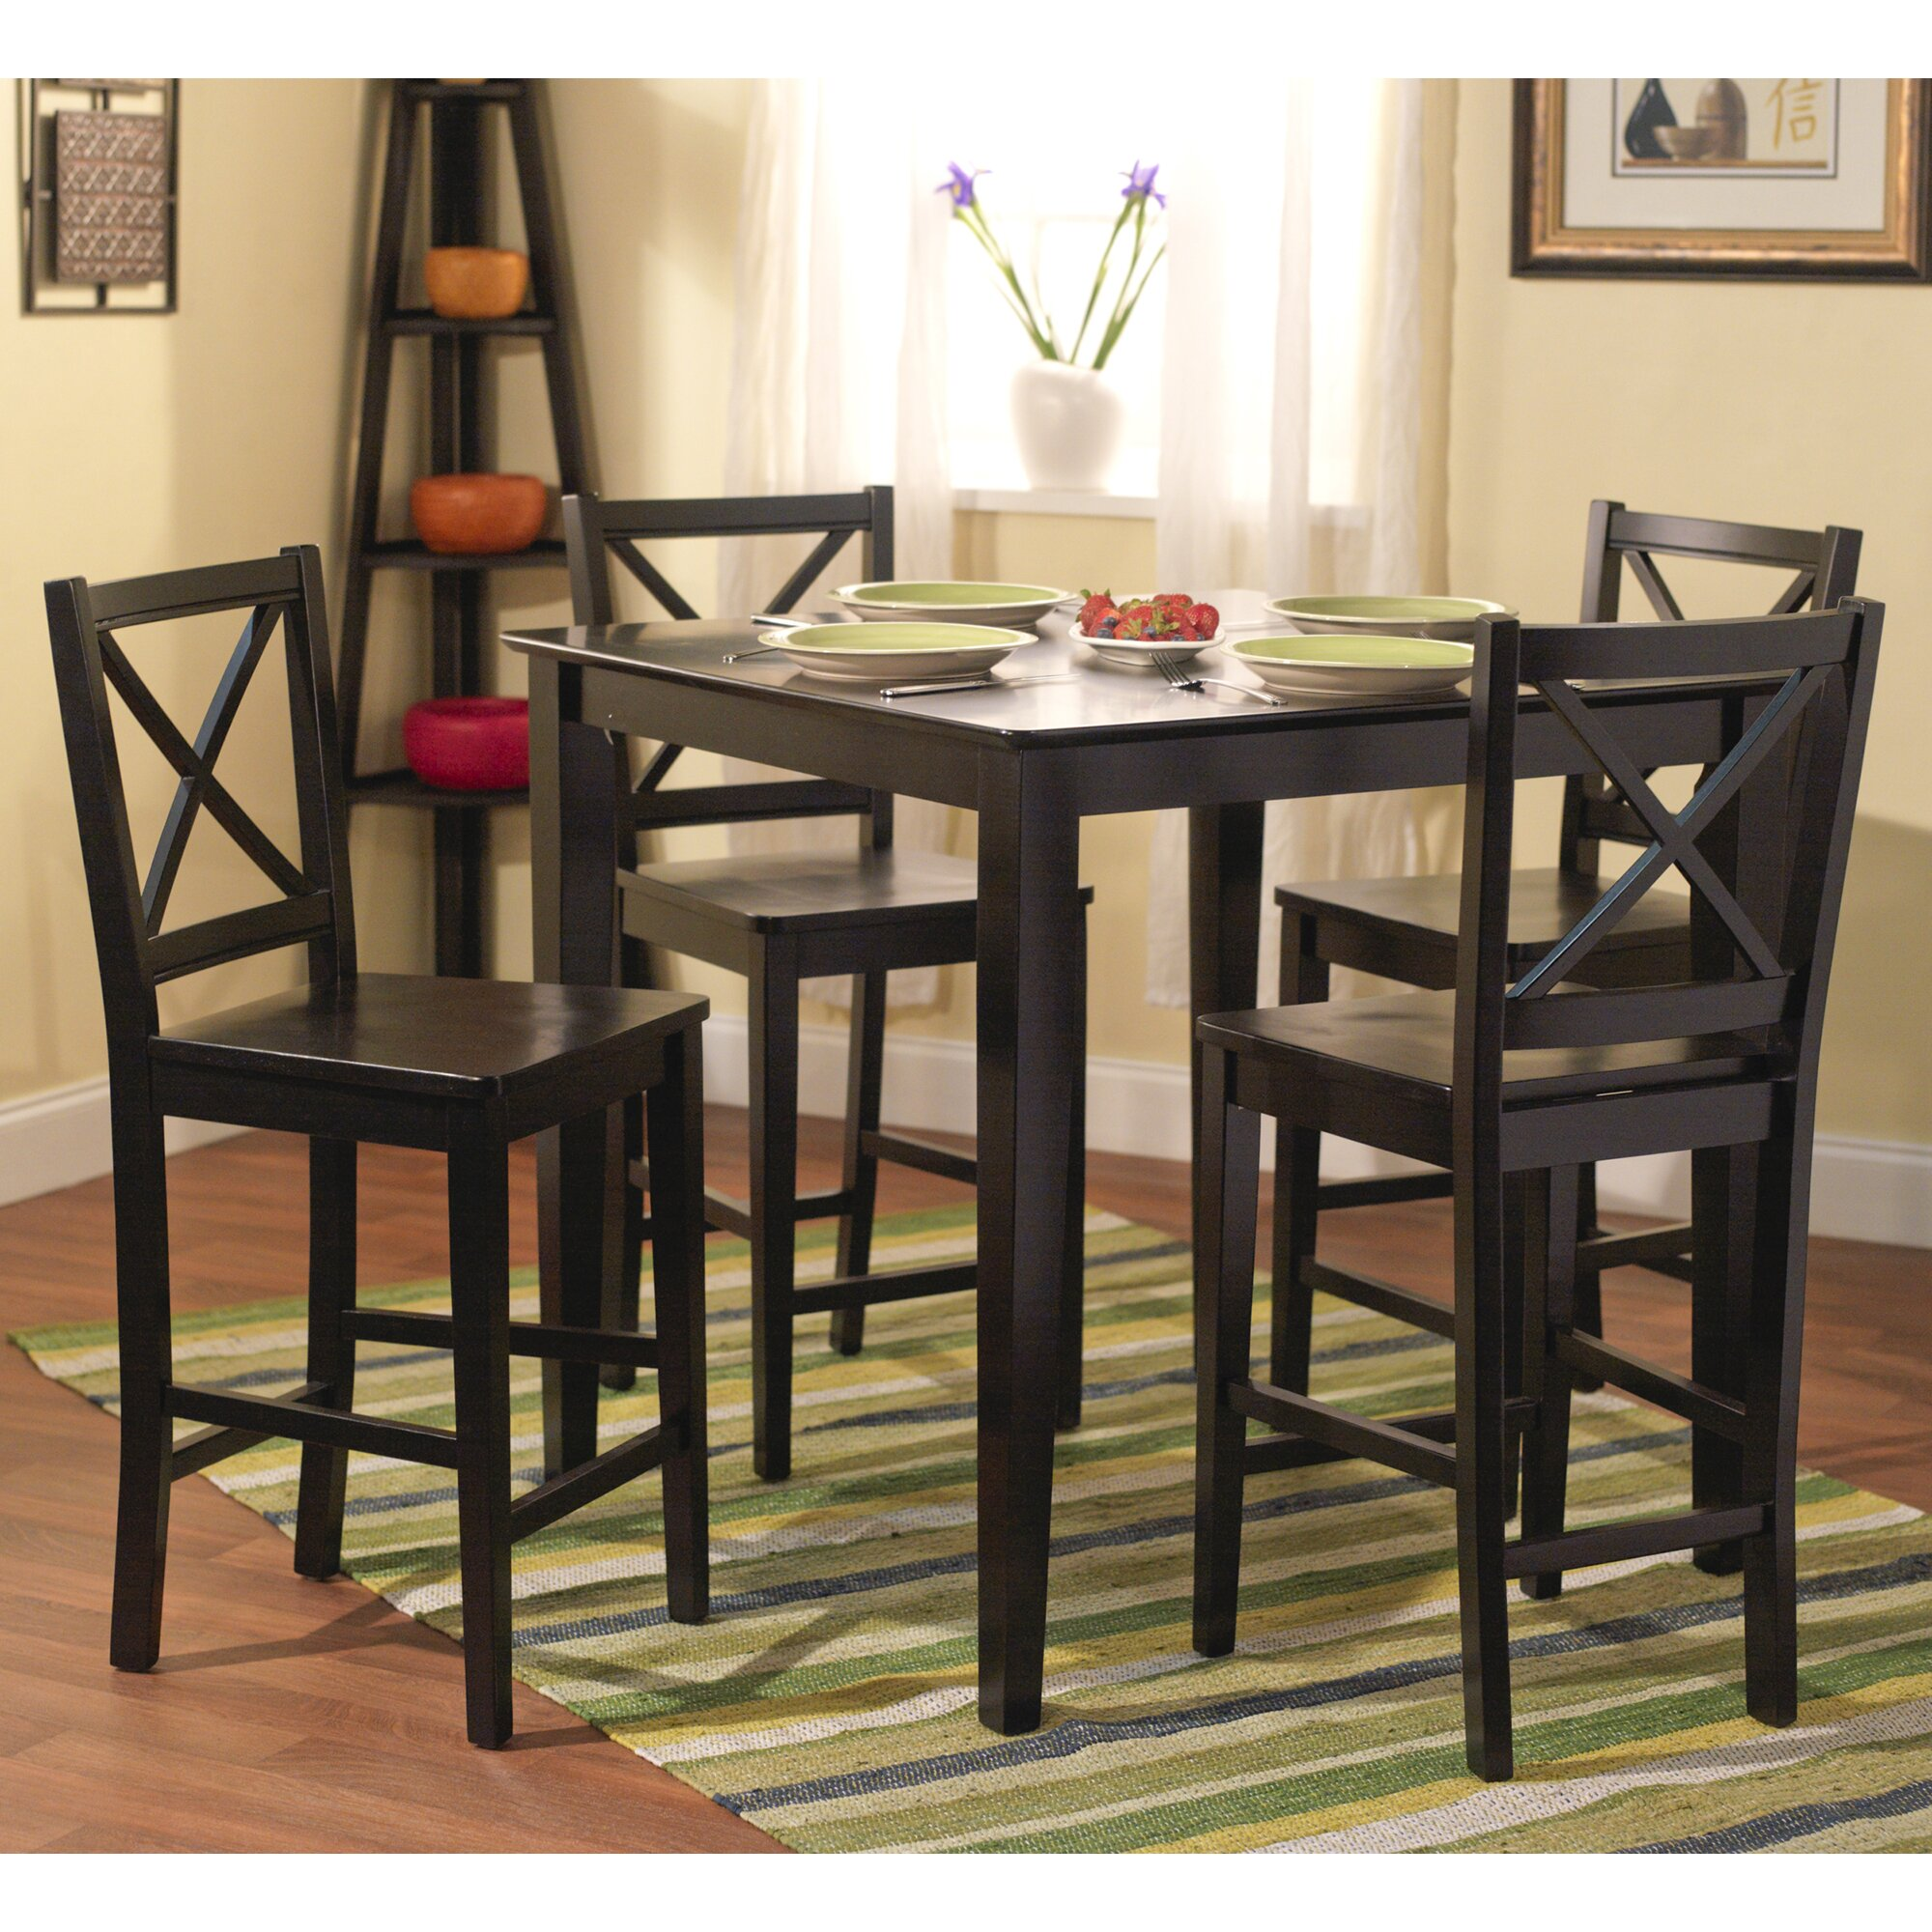 Breakwater Bay Worthington 5 Piece Counter Height Dining Set